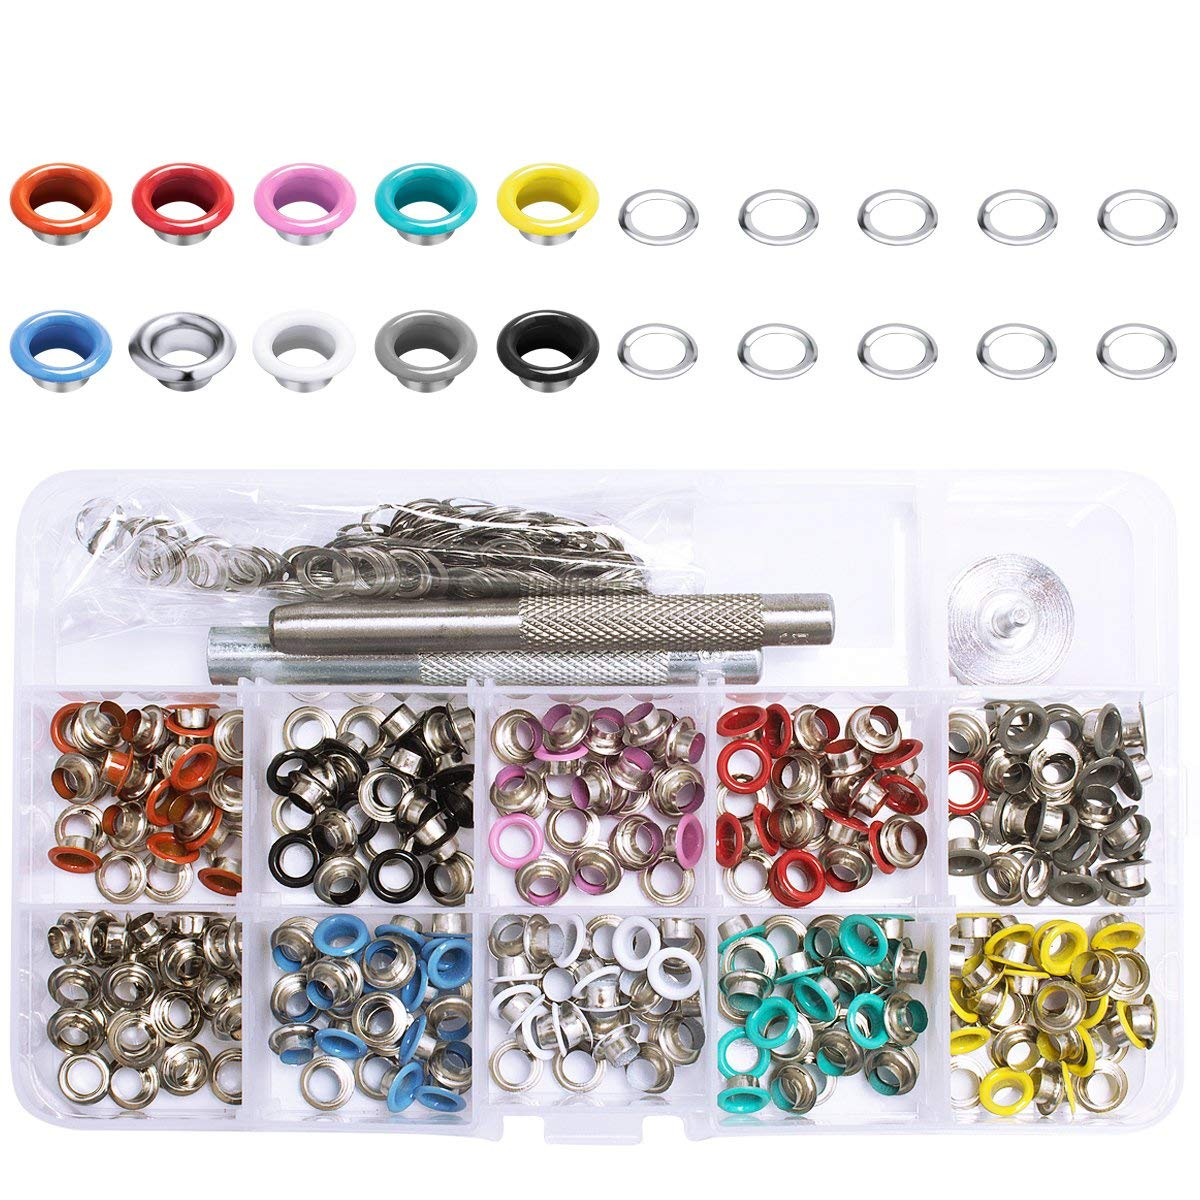 Amariver 300 Pieces Grommets Kit 5mm Metal Eyelets Shoes Clothes Crafts, 10 Colors with Punch Tool and A Clear Storage Box